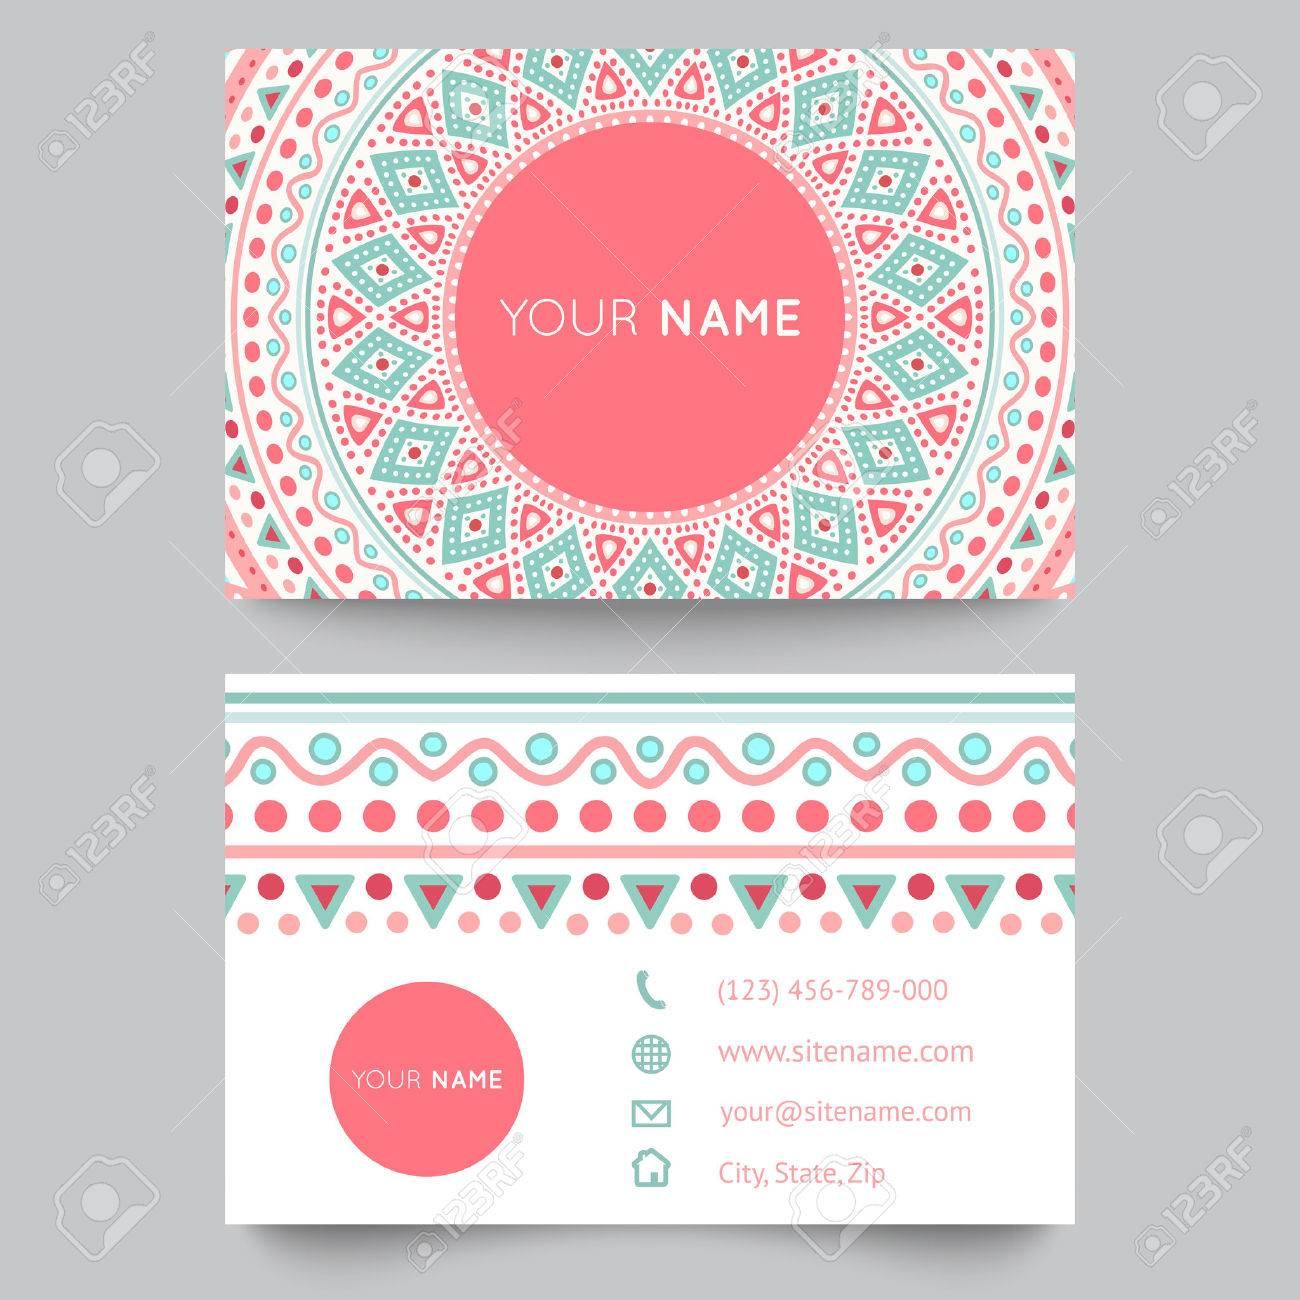 Business Card Template, Blue, White And Pink Beauty Fashion ...